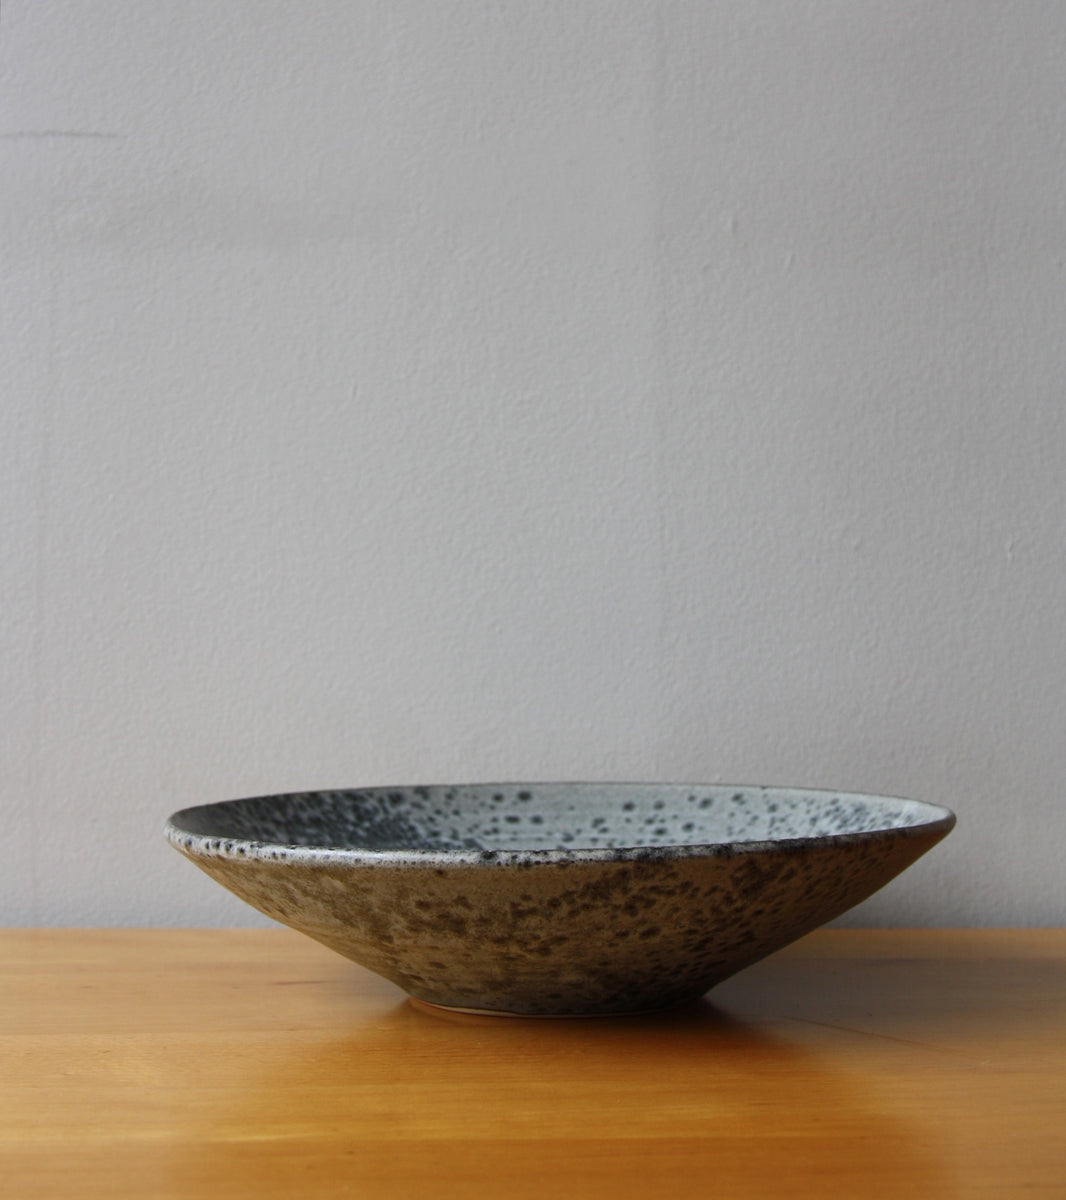 Large Flat Out Bowl 11Grey Glaze Kasper Würtz - Image 4